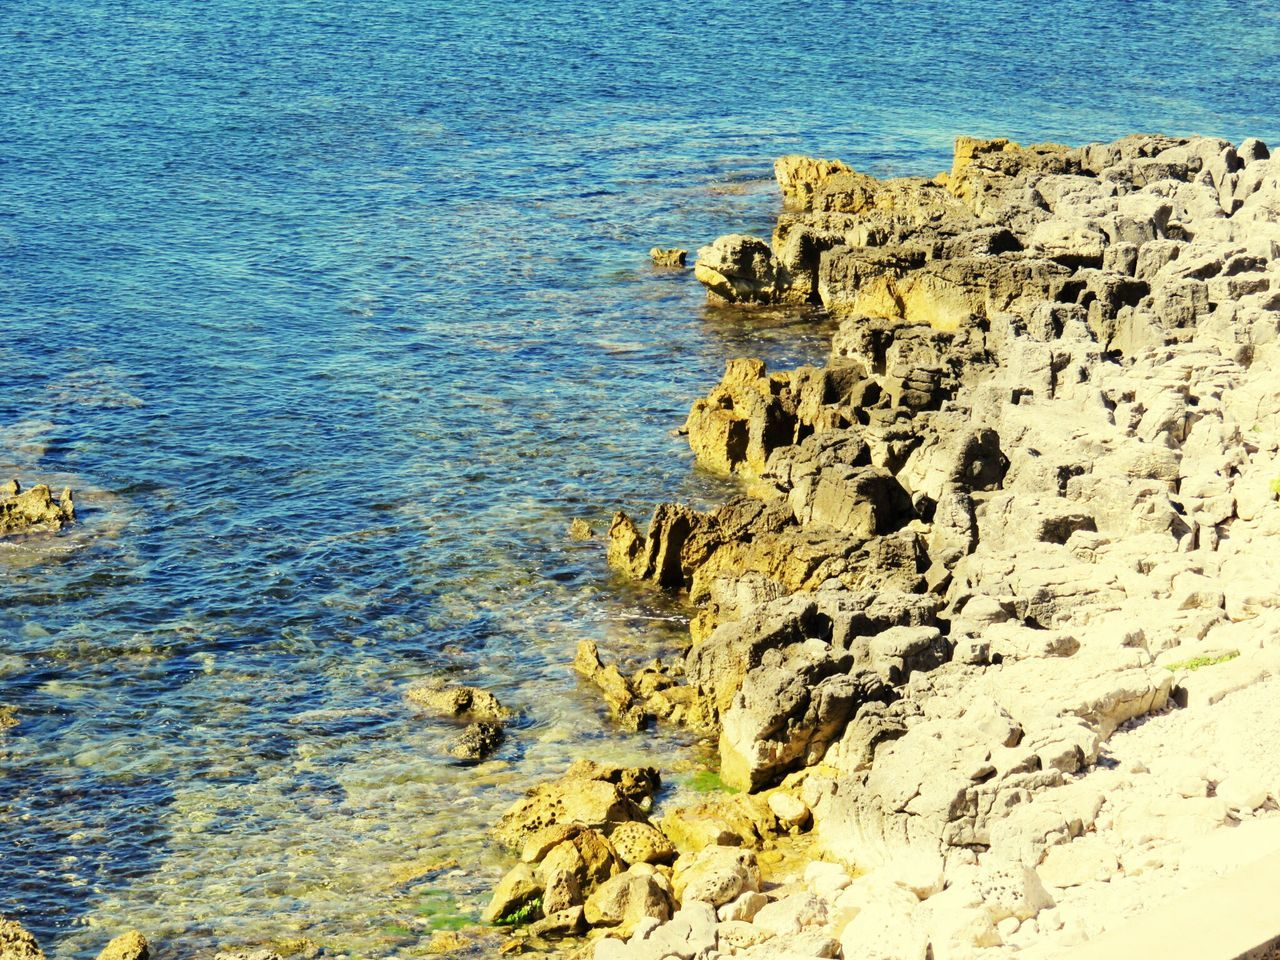 sea, rock - object, no people, water, nature, high angle view, day, animals in the wild, outdoors, animal themes, beauty in nature, close-up